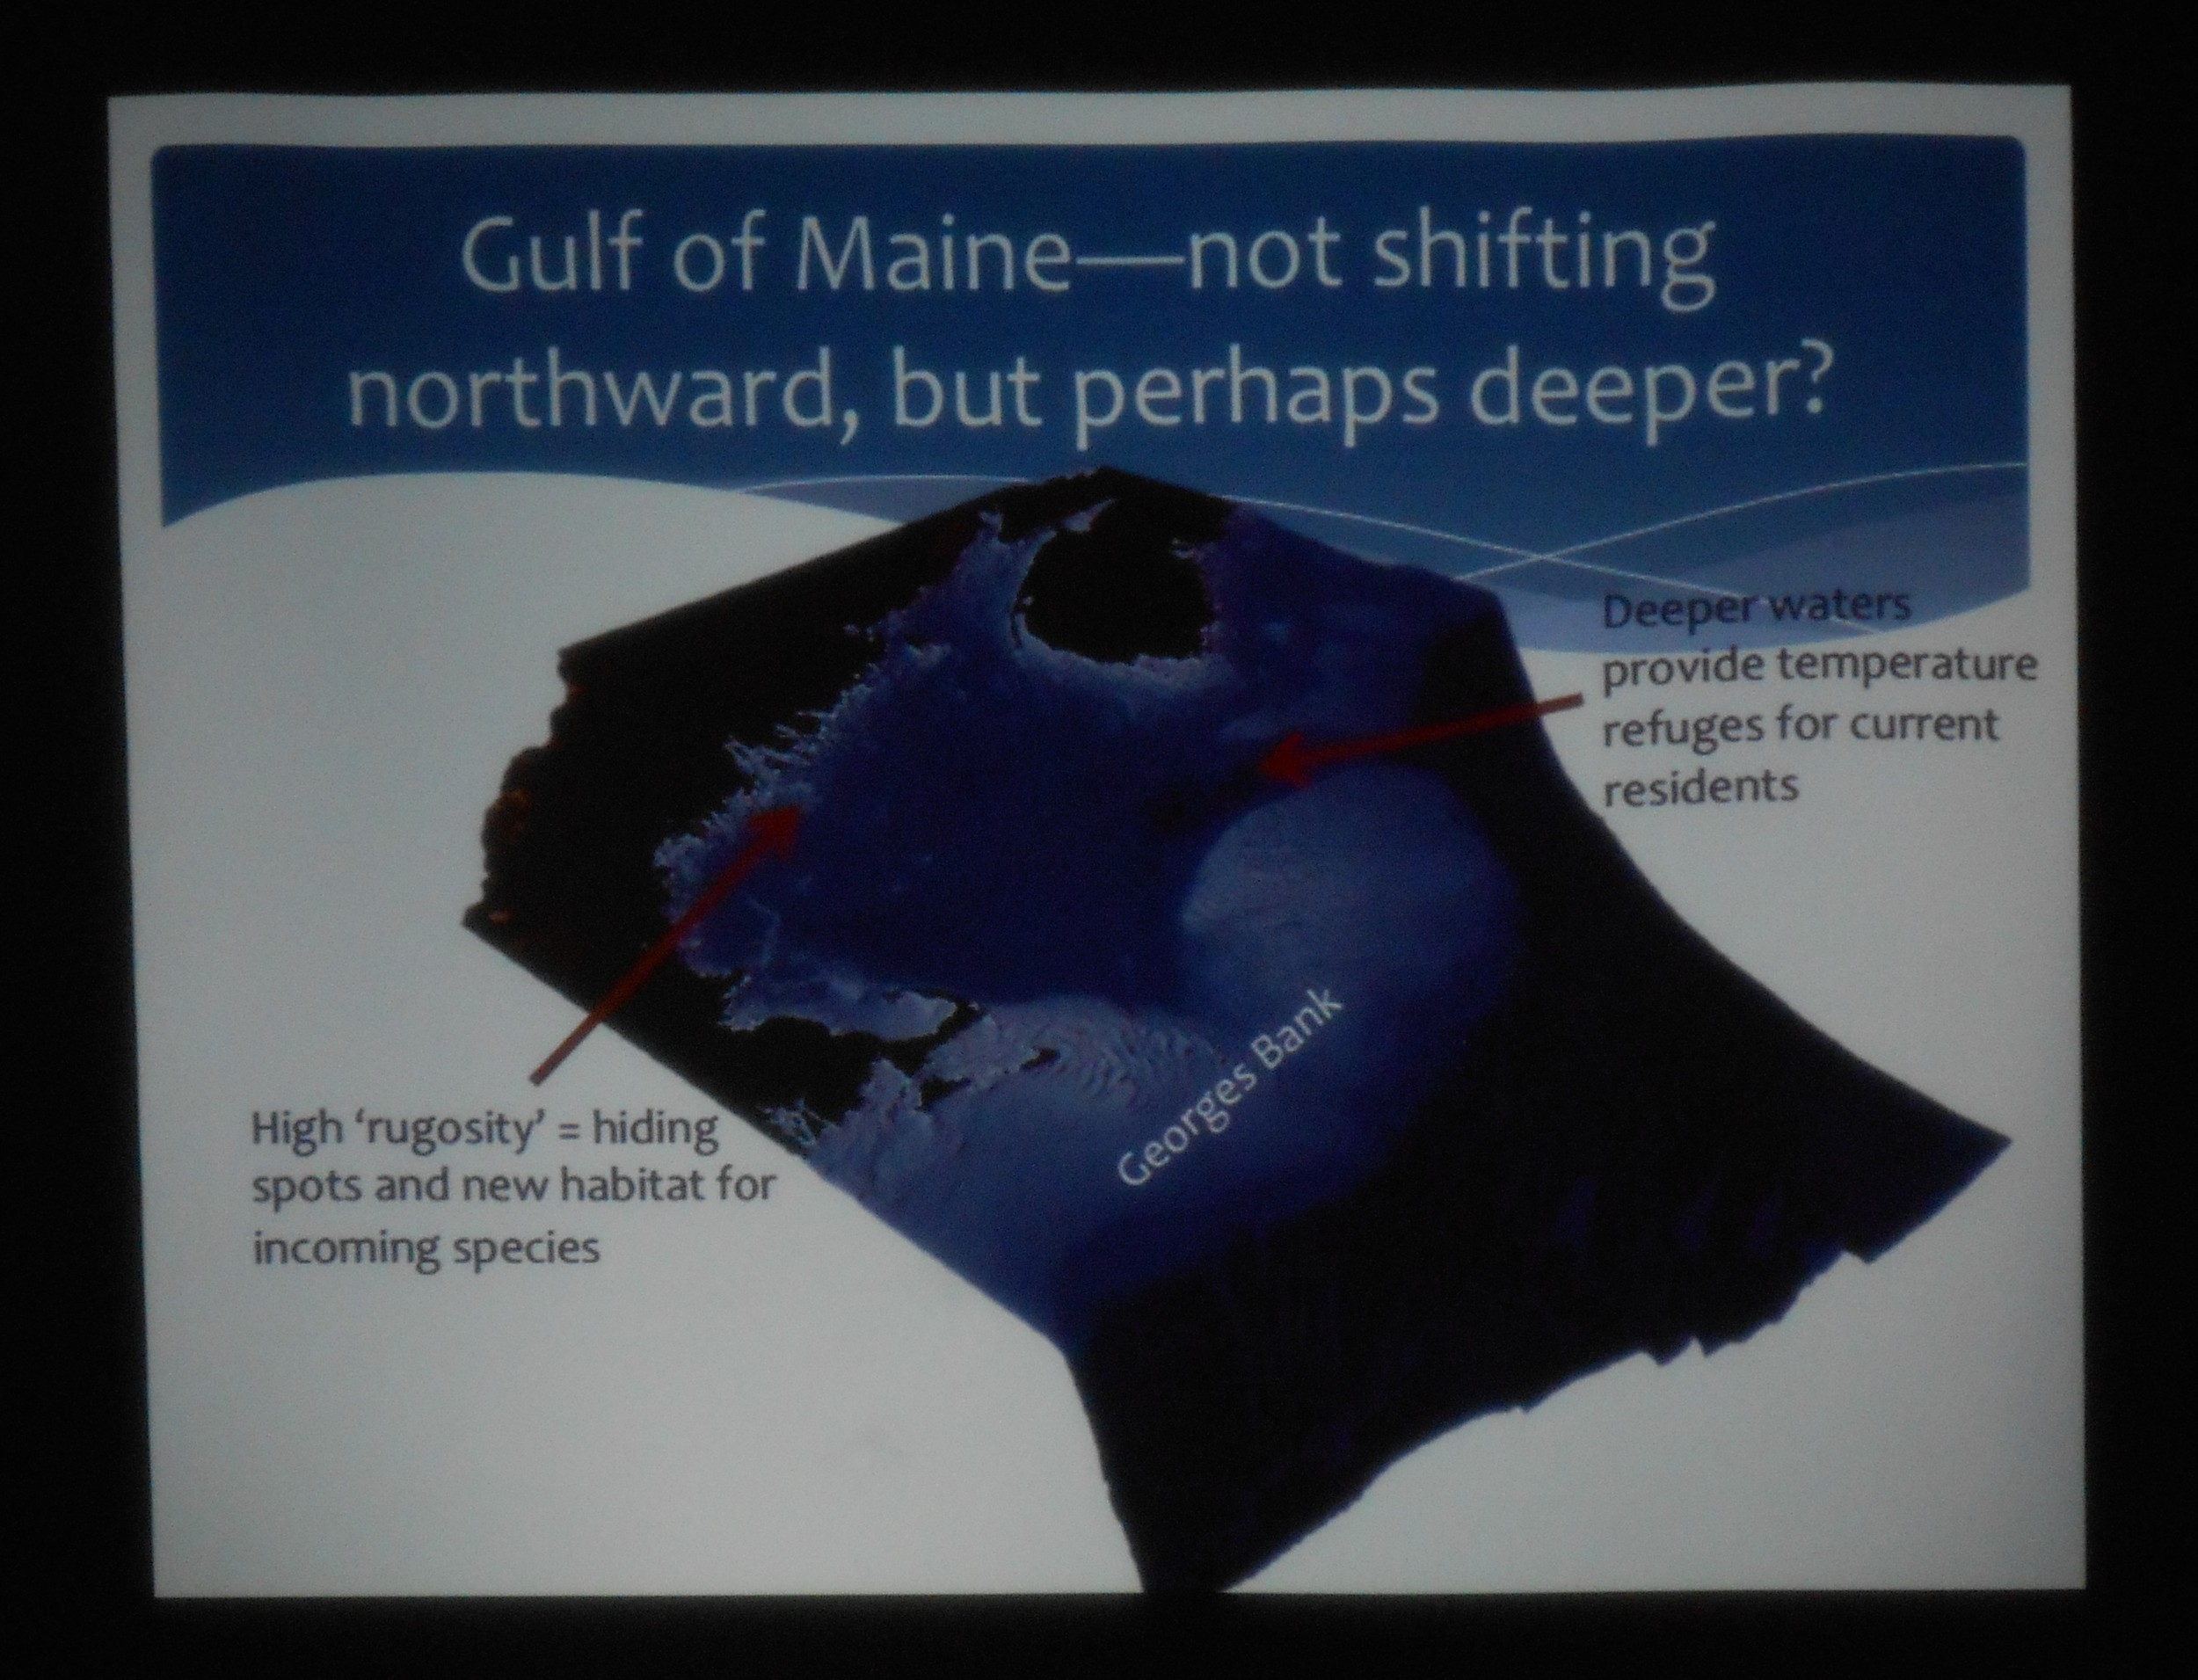 Kristin's slide: in the Gulf of Maine, some fish species are adapting to the reality of warming waters by moving deeper.